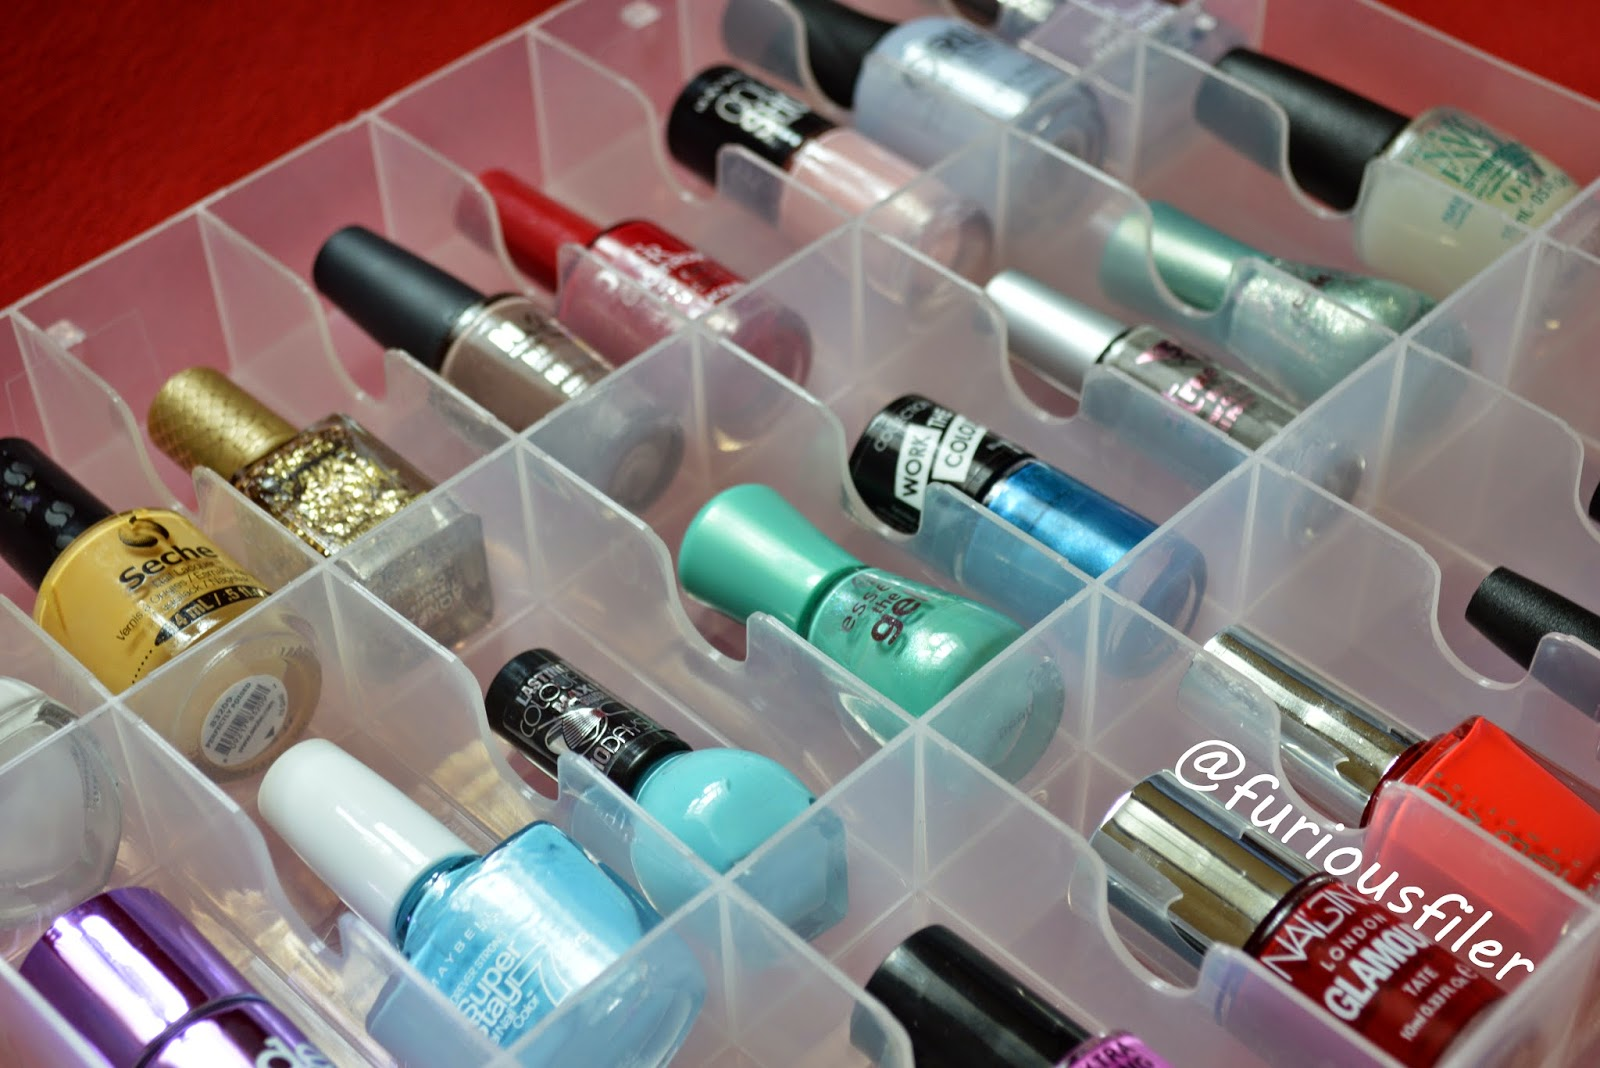 A couple of weeks ago I finally accepted that I needed to reorganize my nail polish stash. I use 2 Melmers and a DIY nail polish rack to store my polish and it is a wonderful system if I actually use it! I made the terrible mistake of reorganizing my stash by brand (instead of color).